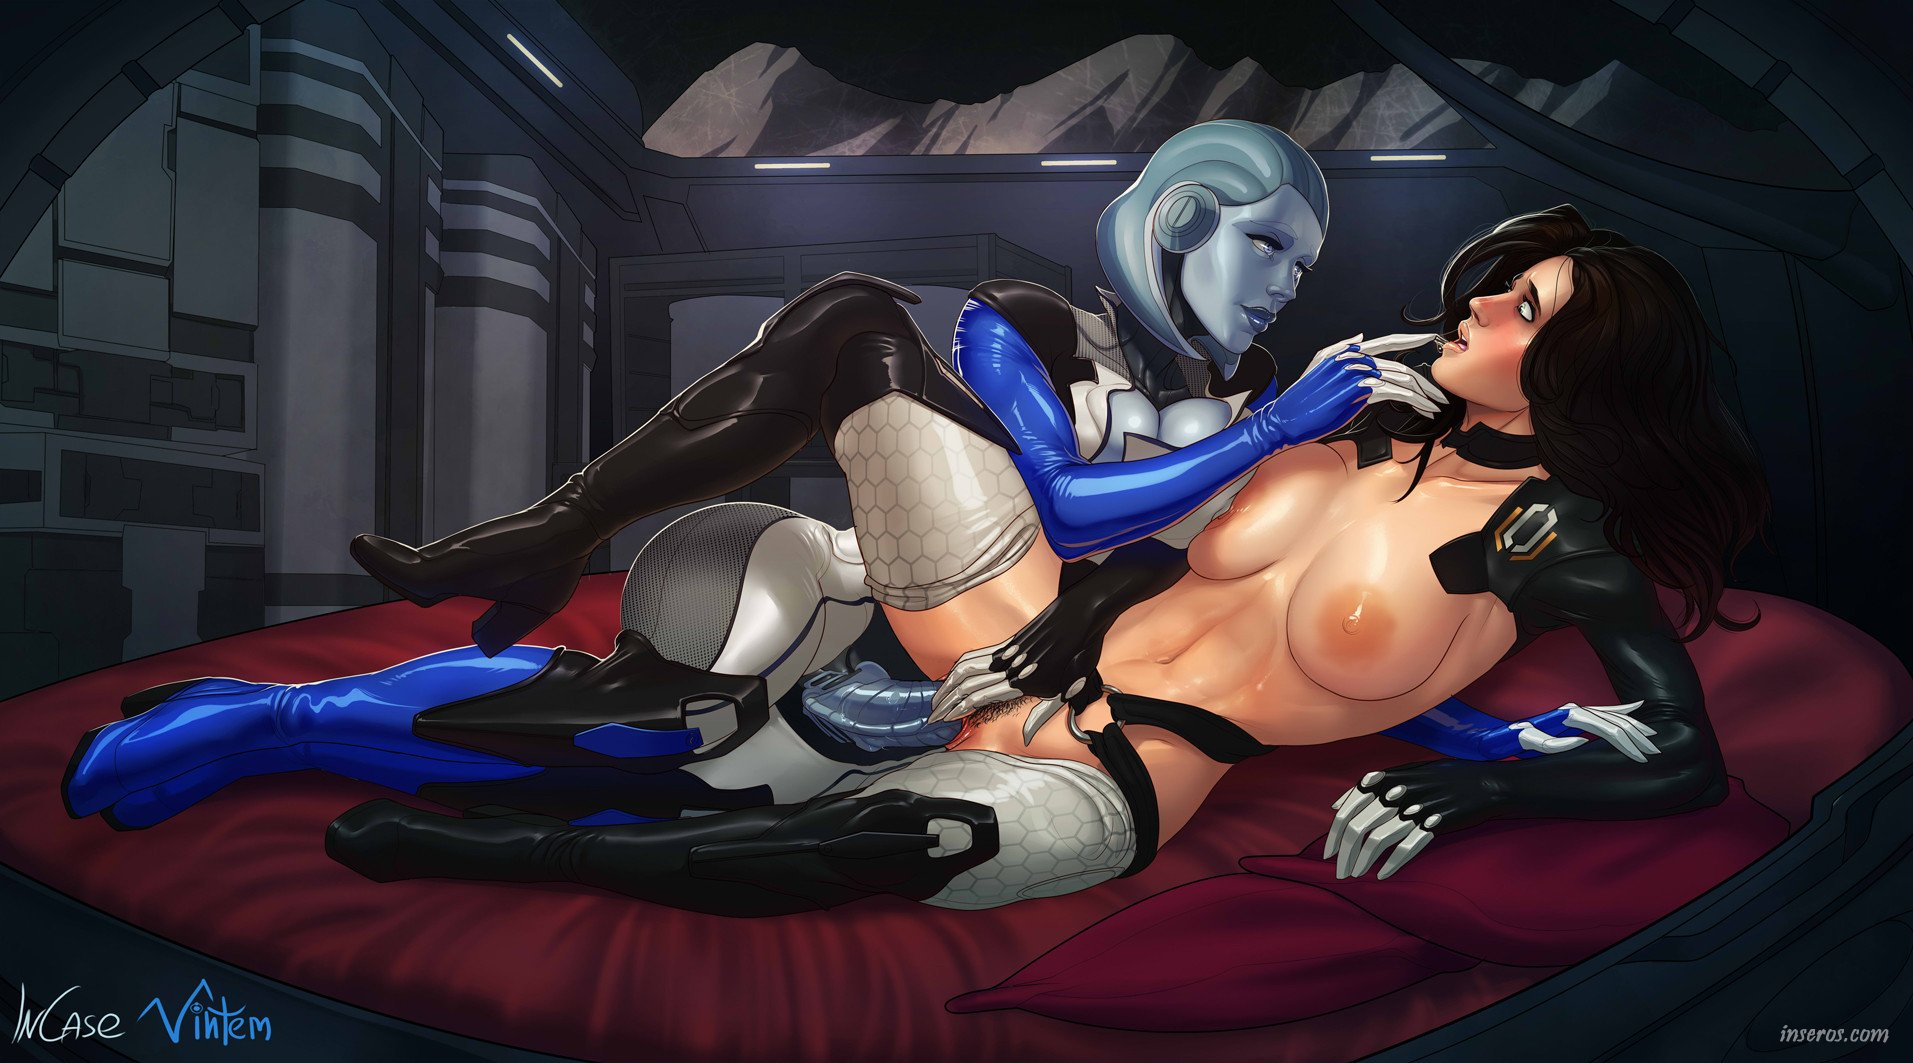 Edi mass effect porn game fucked pic